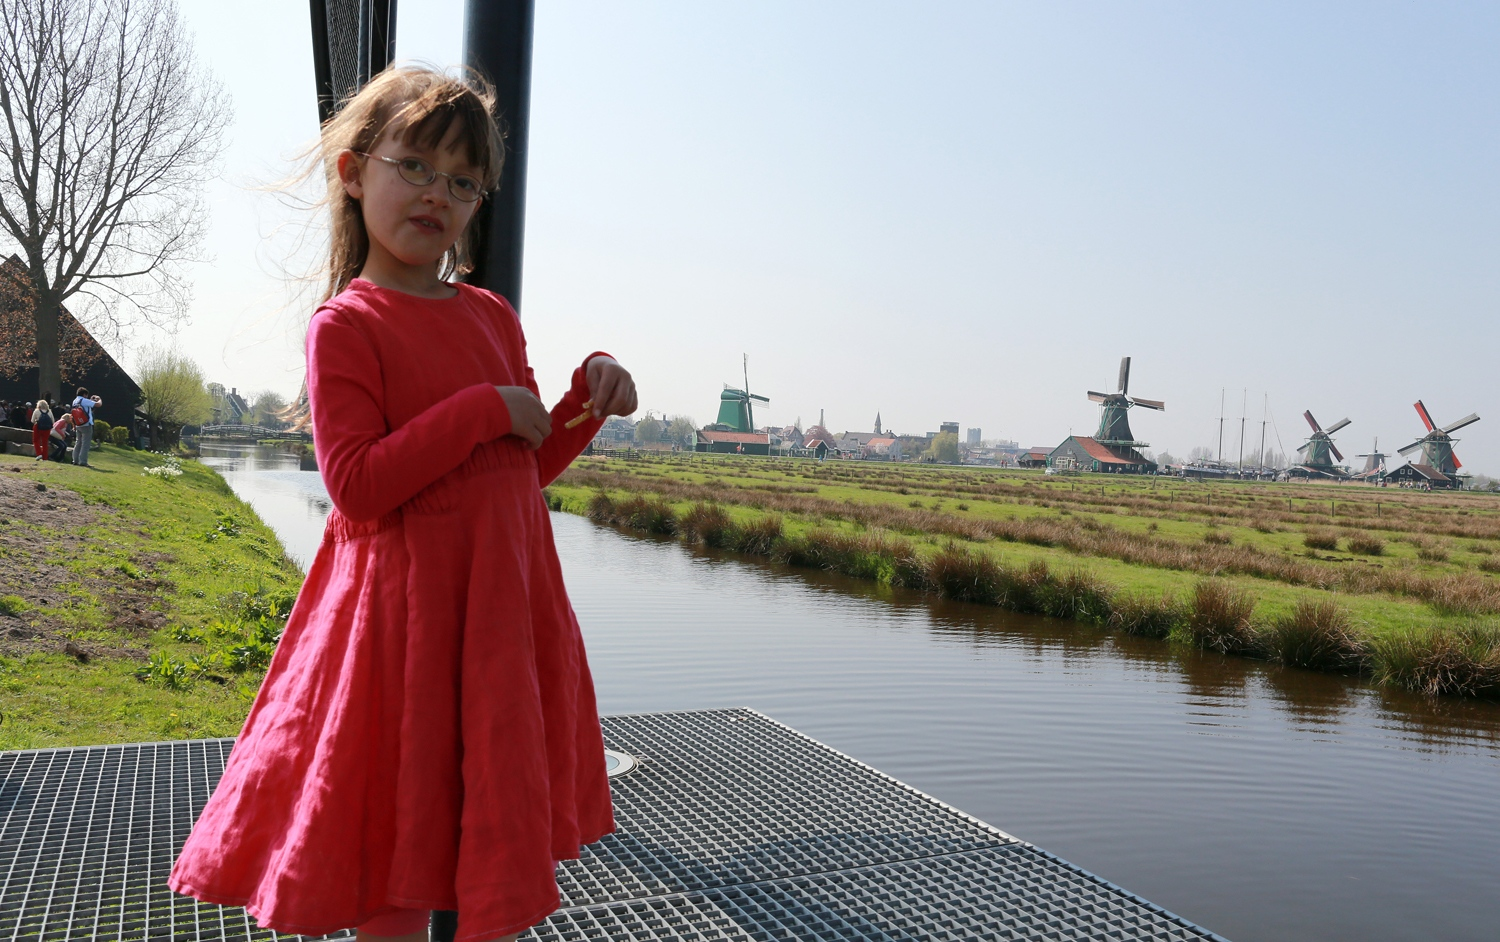 Five years old Hannah Doornenbal pauses from playing with her sisters near a dyke overlooking the Zaanse Schans a fully inhabited, open-air conservation area and museum a few miles north of Amsterdam.